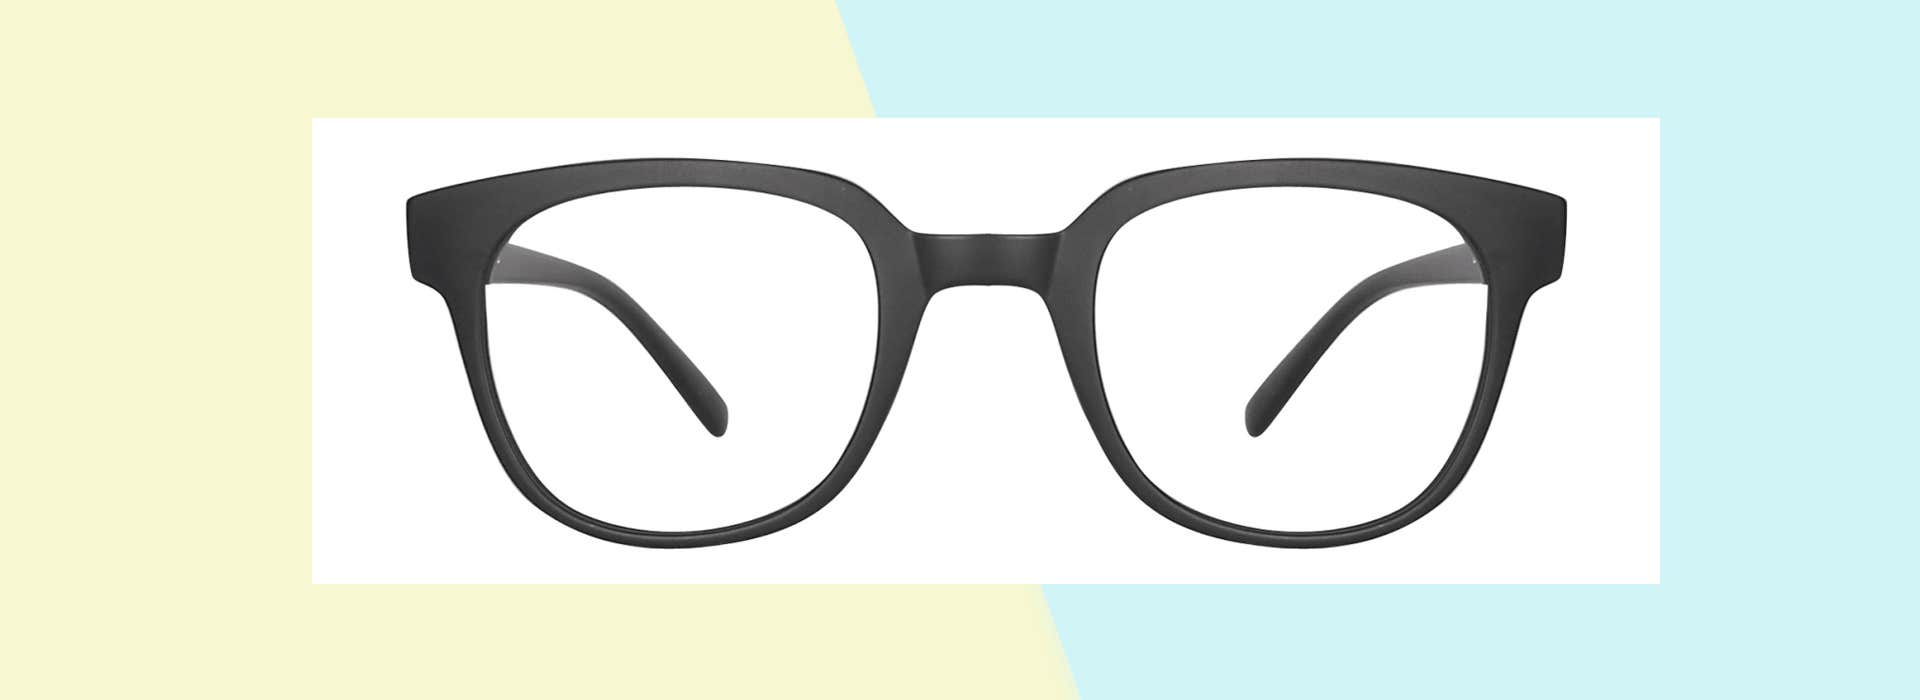 The Matte-Black Eyeglasses